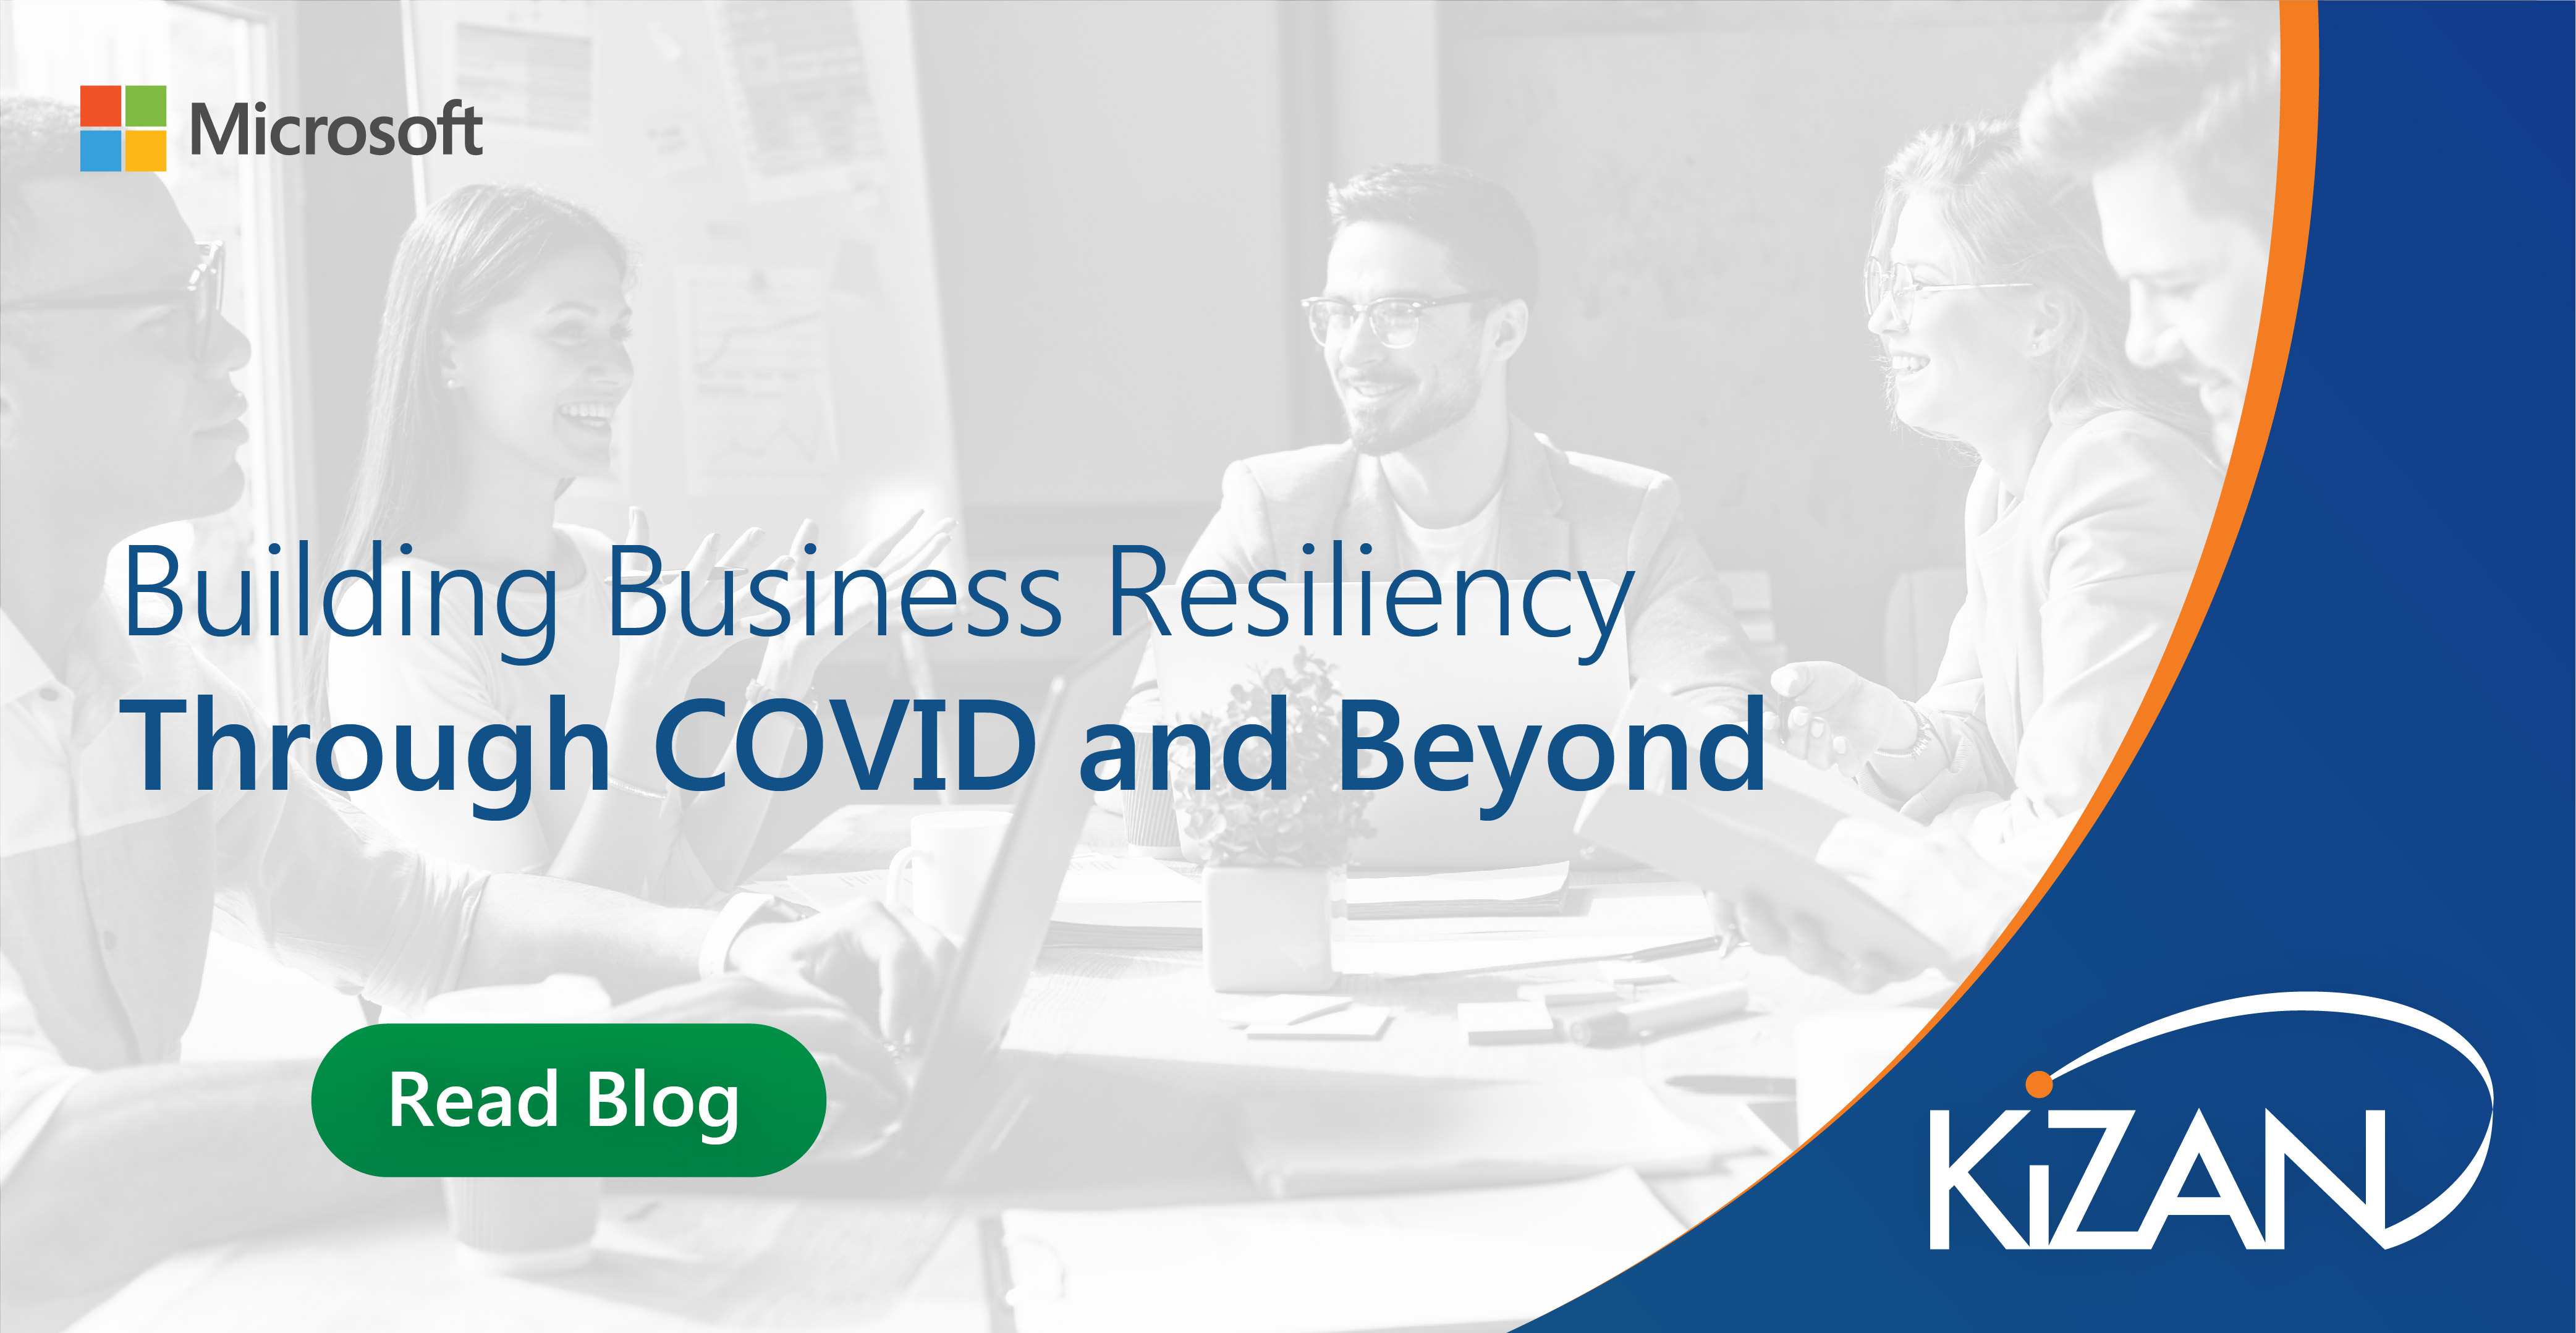 Building Business Resiliency Through COVID and Beyond